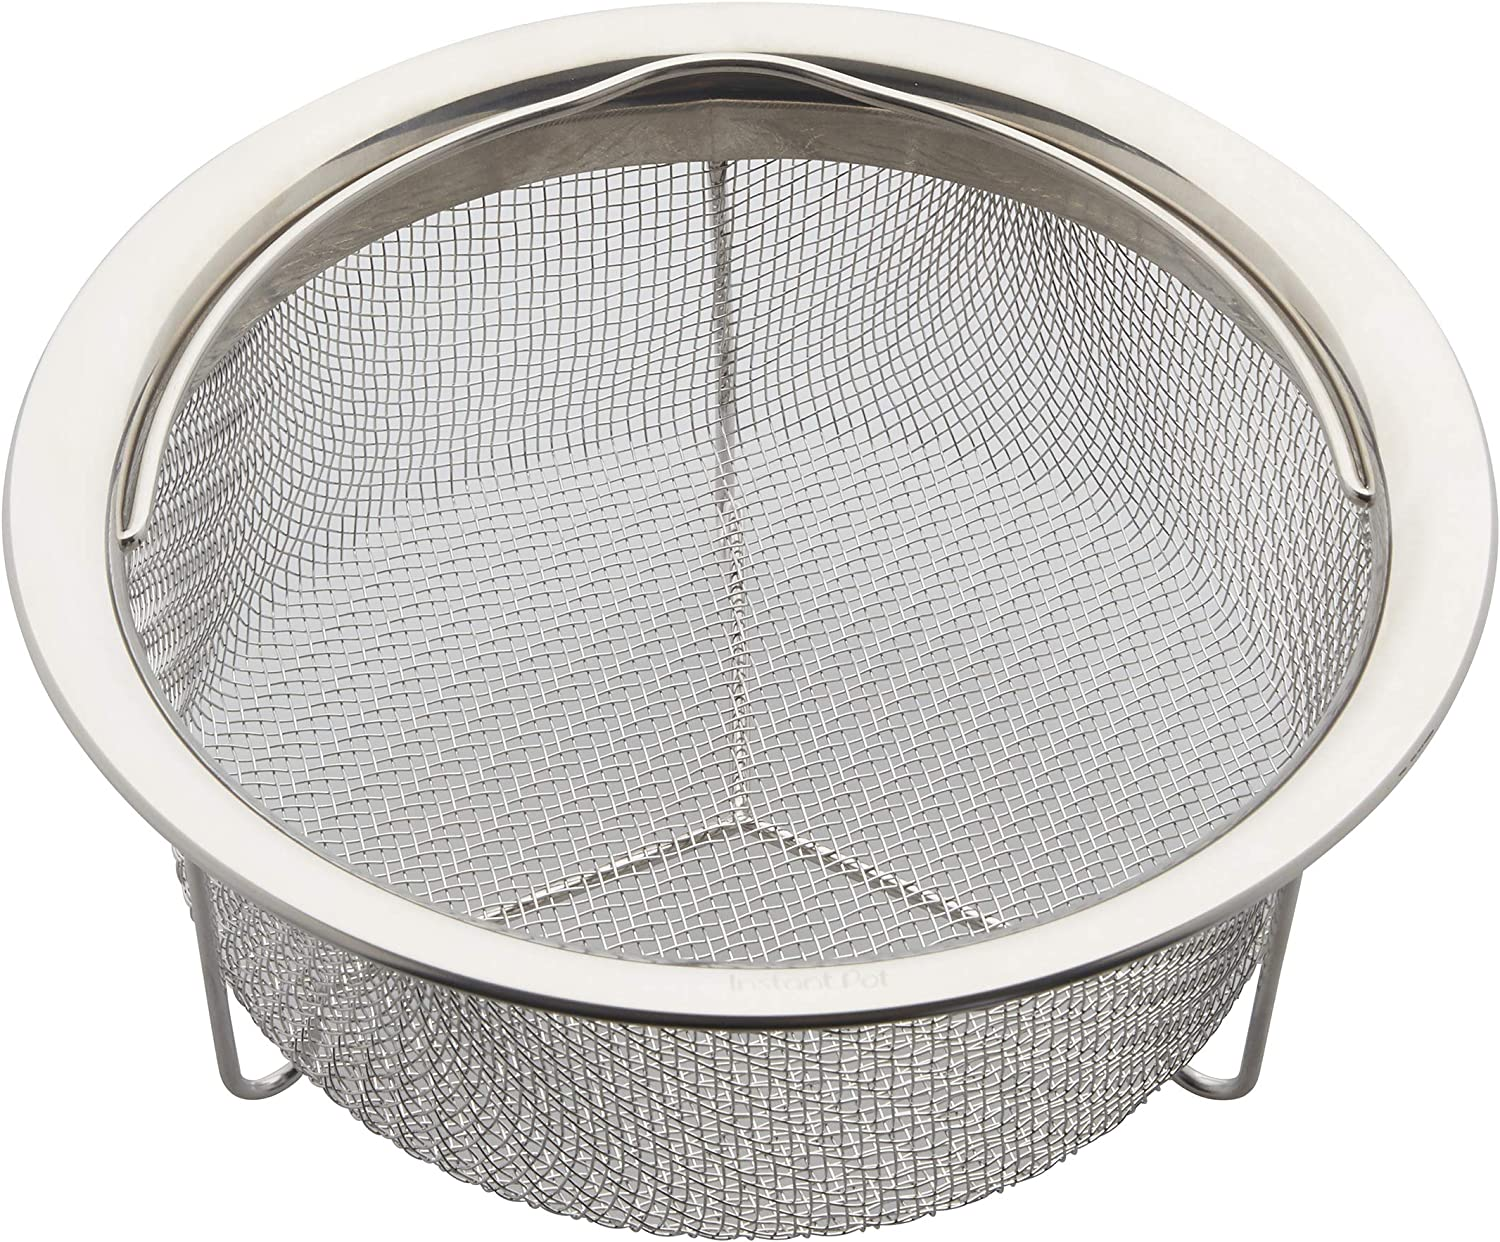 Instant Pot Official Small Mesh Steamer Basket, Stainless Steel